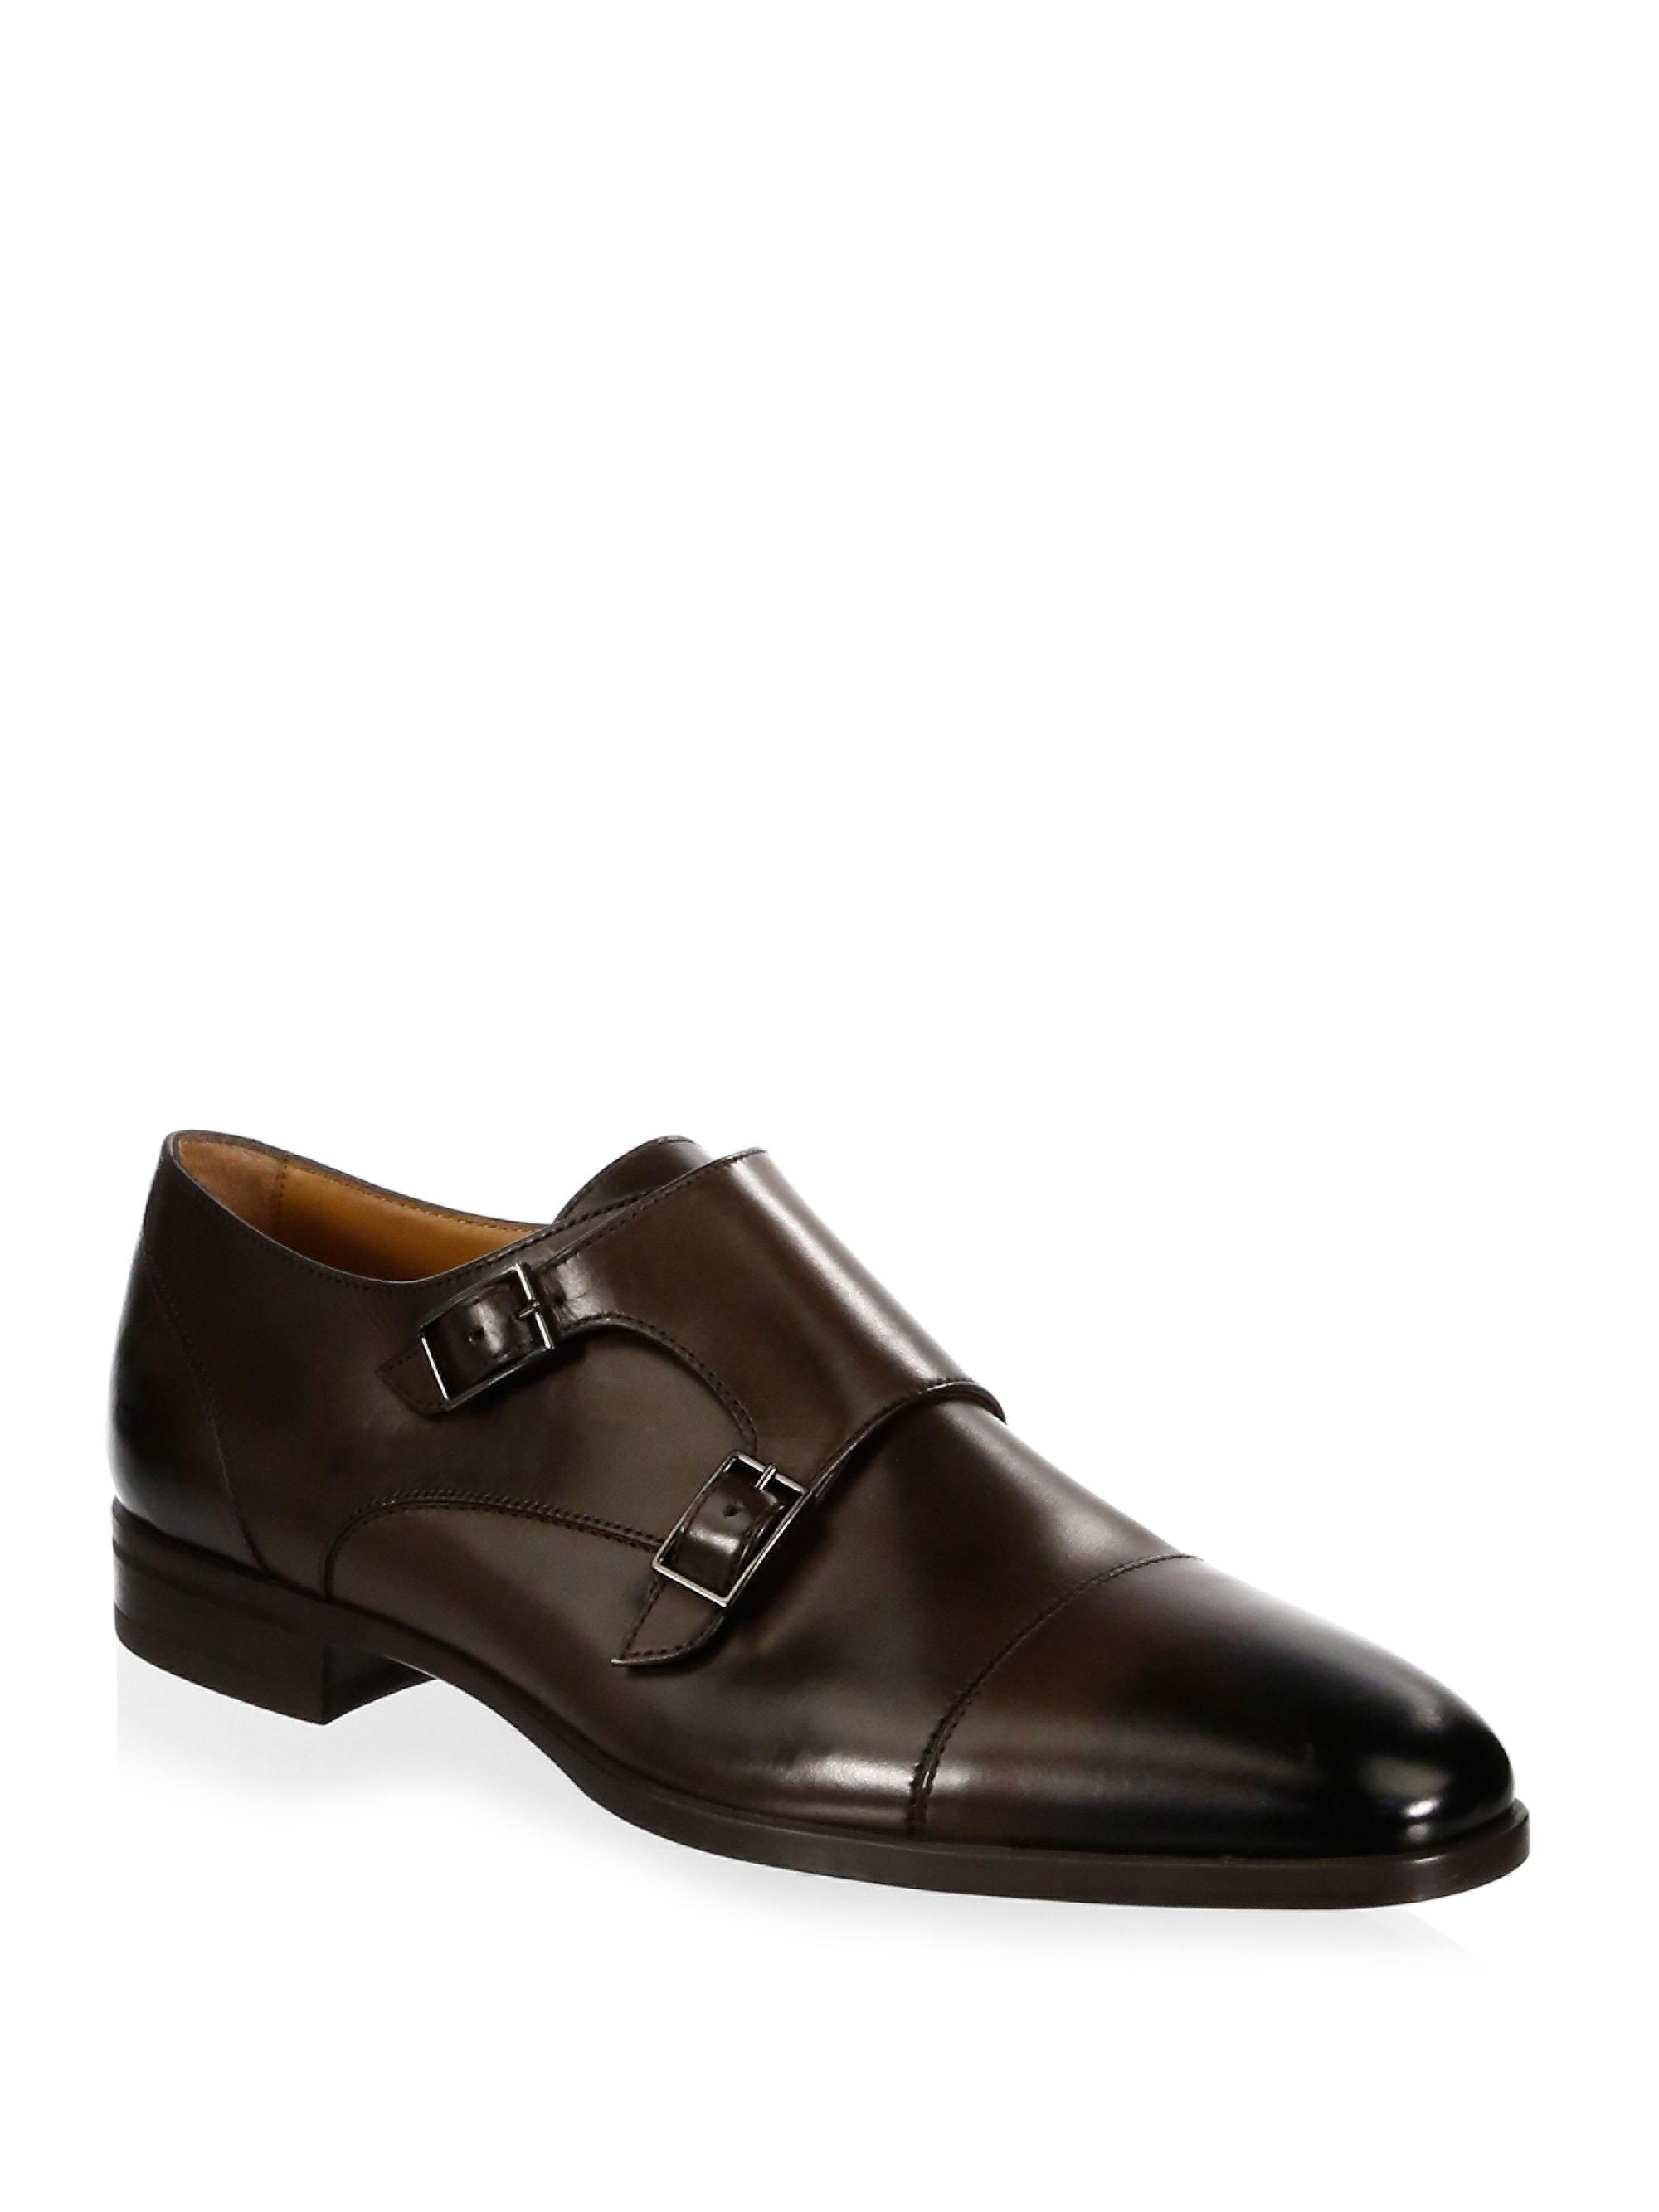 HUGO BOSSKensington Leather Double Monk-Strap Shoes